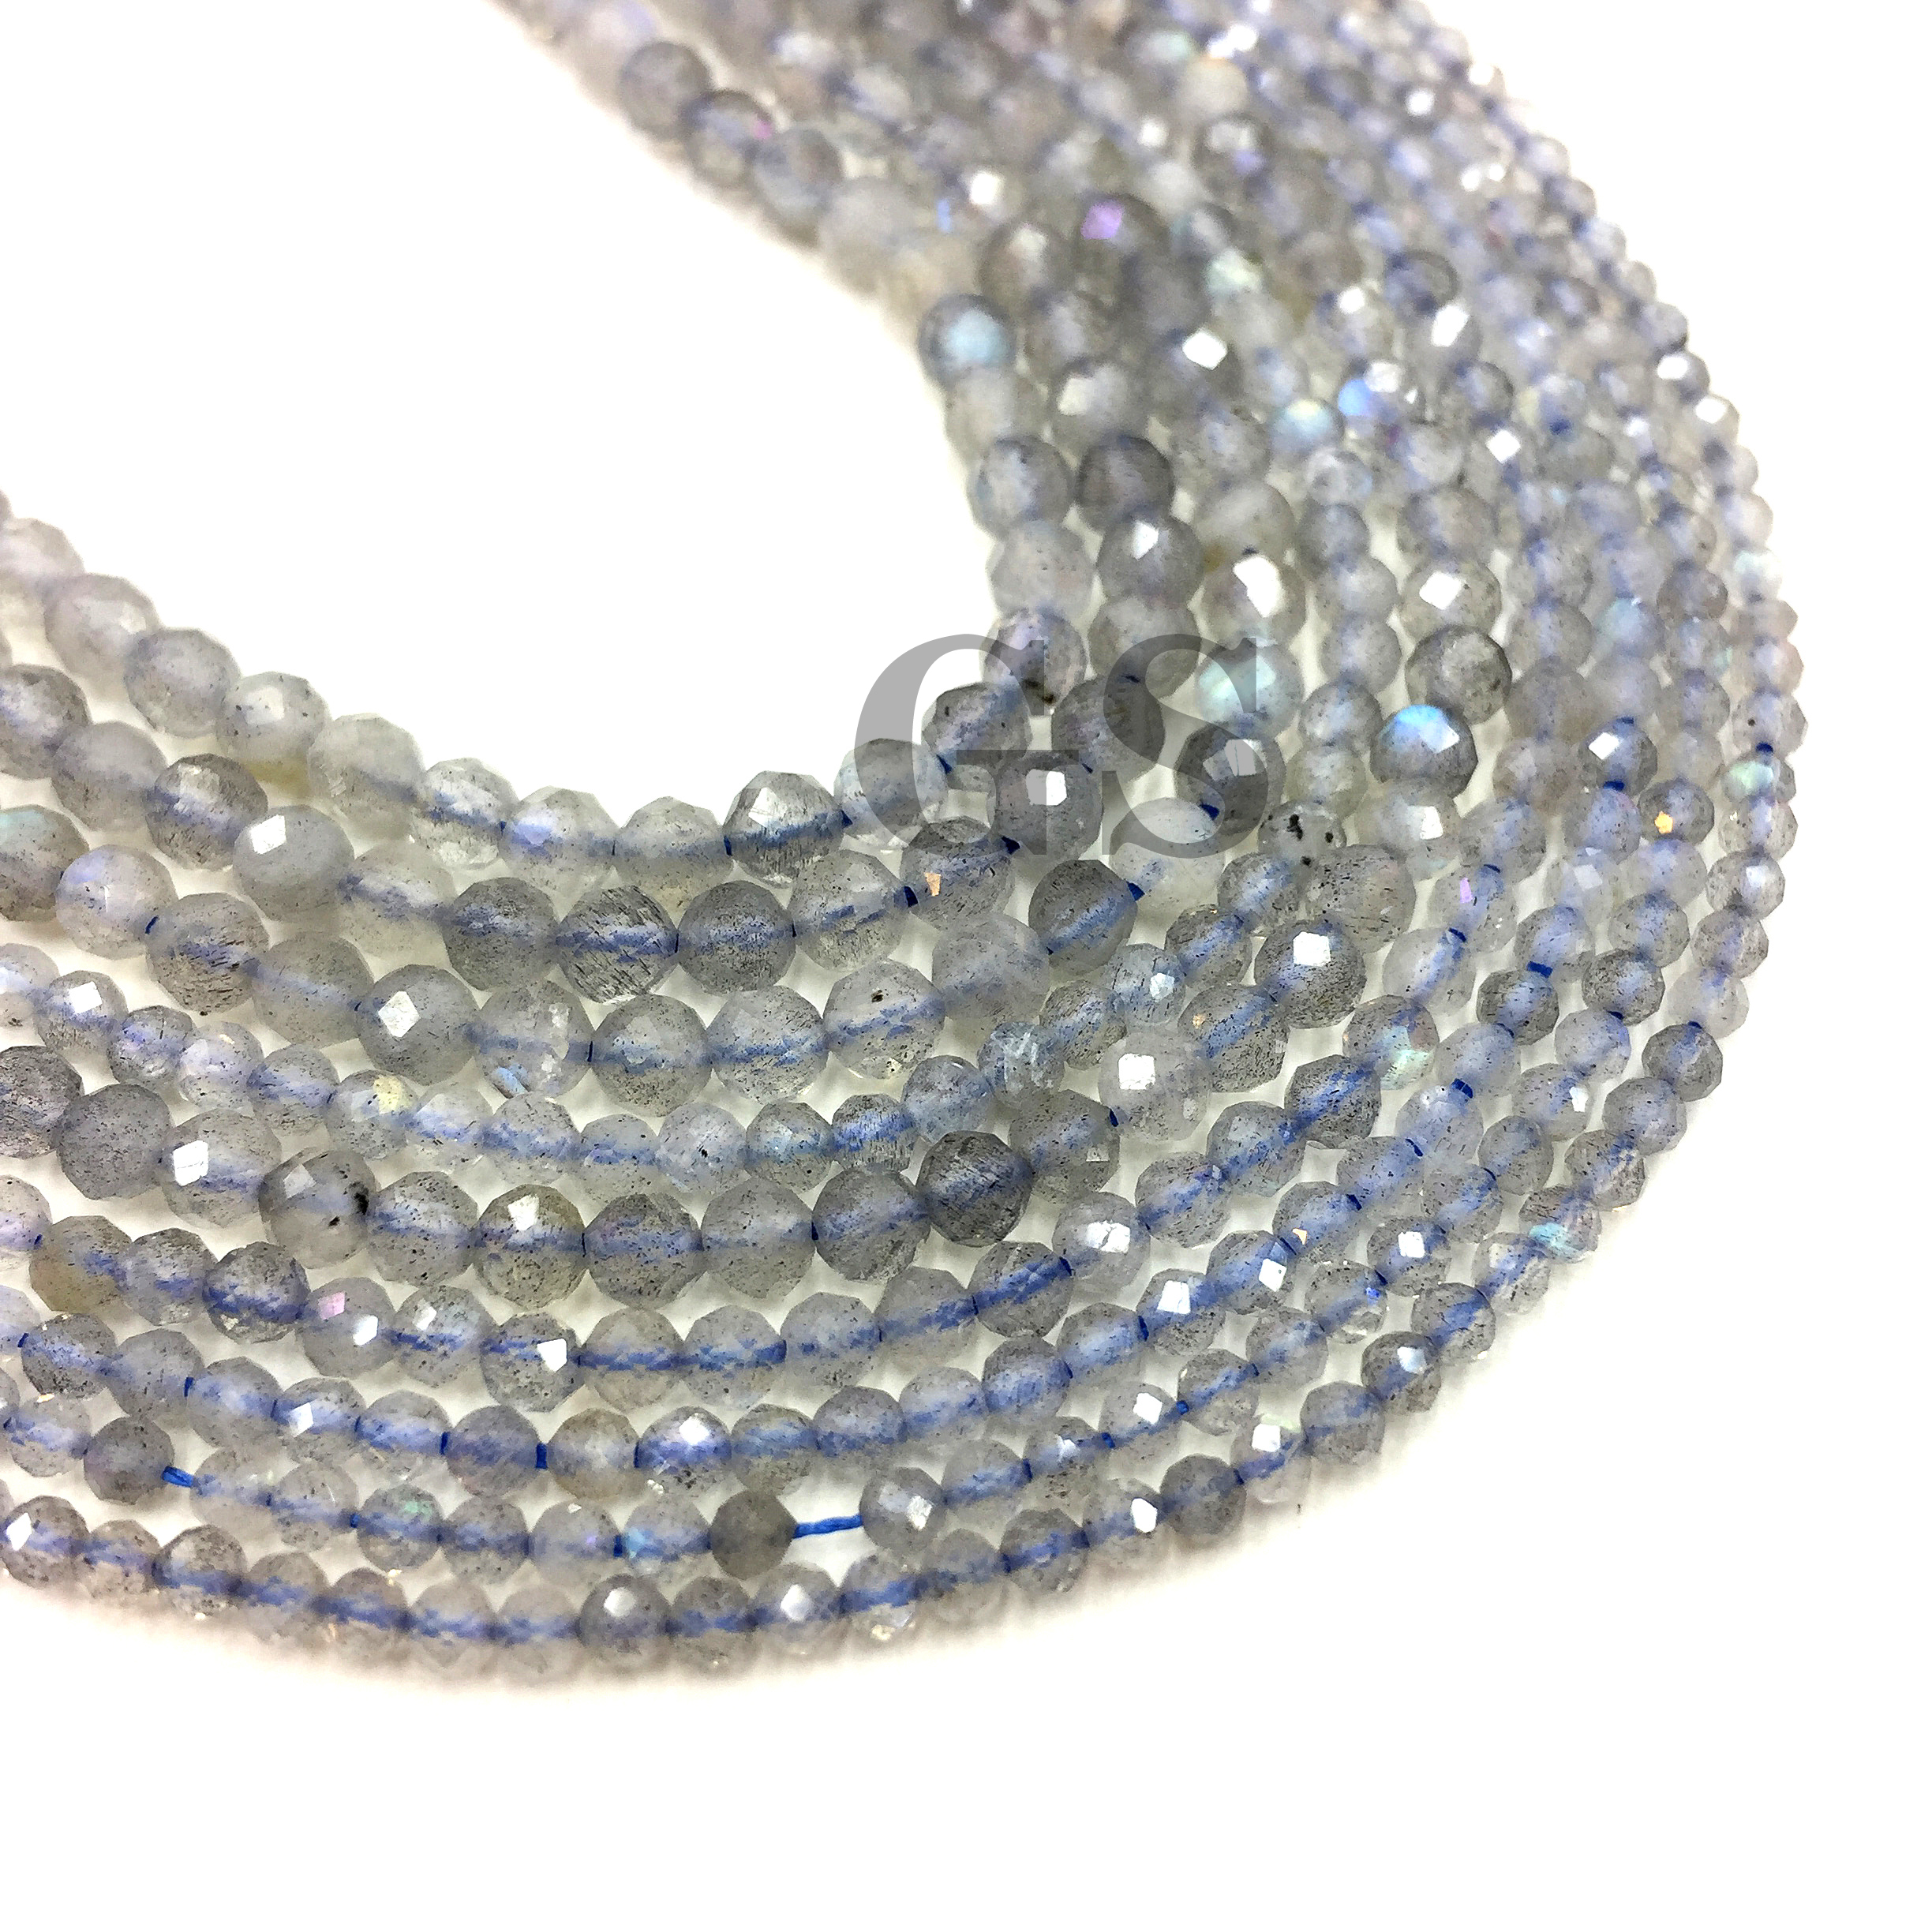 Natural Faceted Labradorite Small Size Beads Round Gemstone Round Beads For DIY Jewelry Making Necklace Bracelet Strand 2 3 4mm